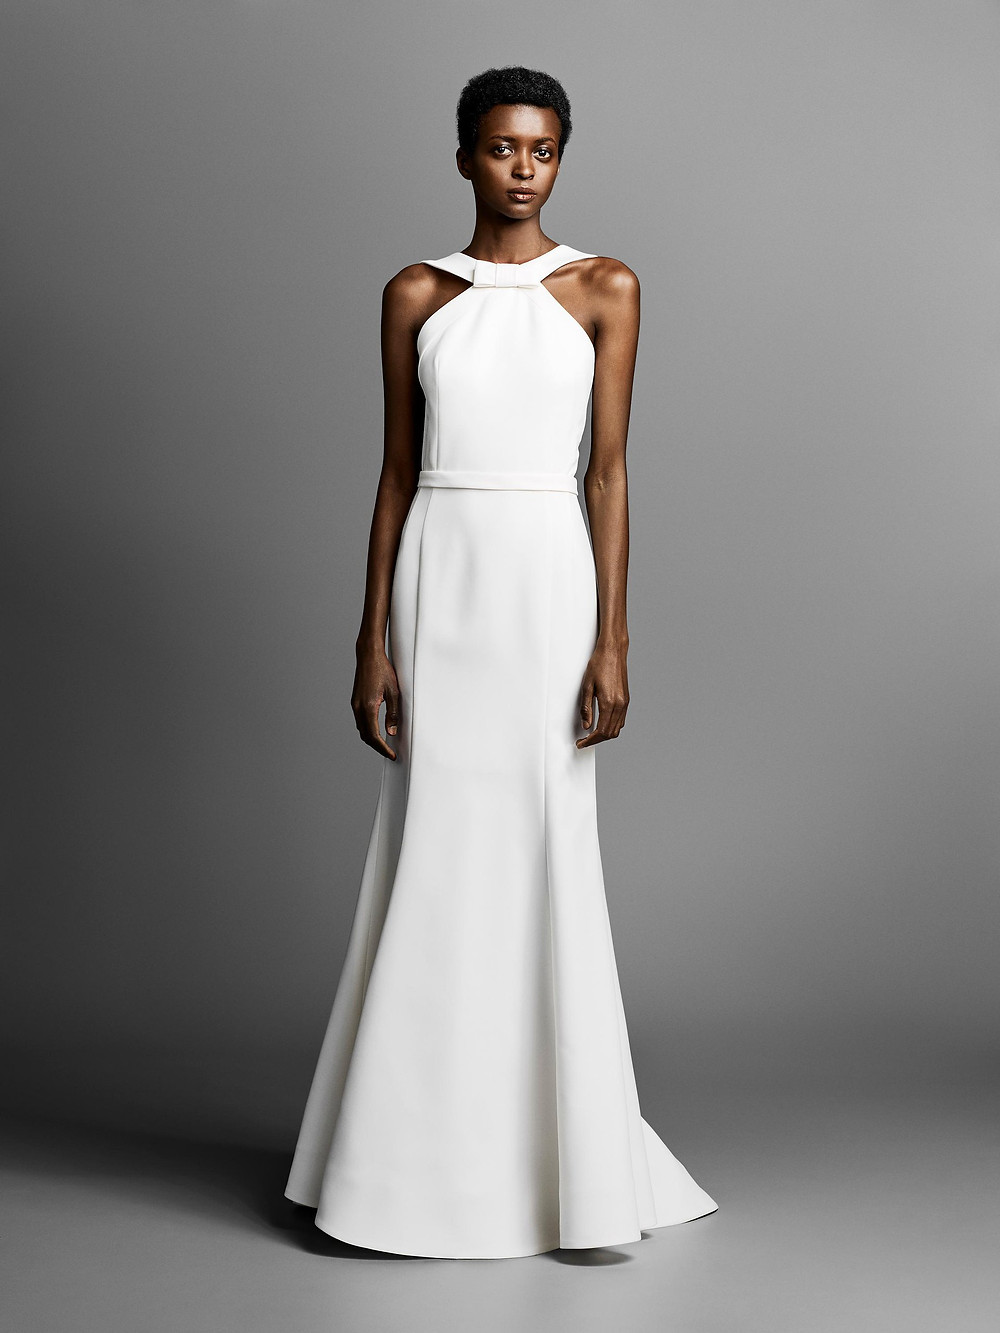 Weddinspired | 35+ Stylish Halterneck Wedding Dresses | Viktor & Rolf - From the S/S 2019 collection